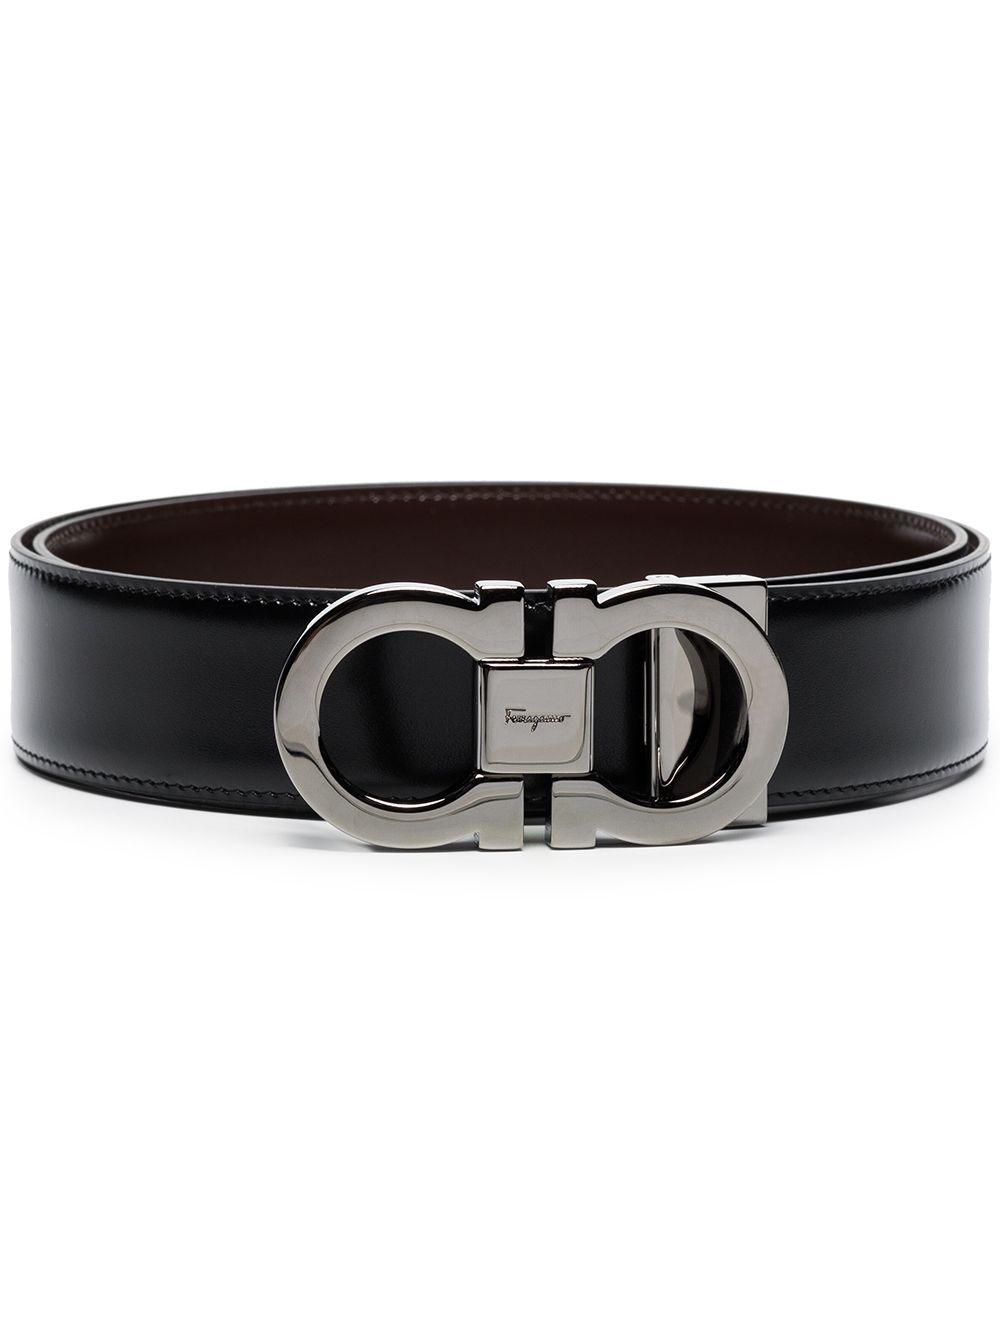 SALVATORE FERRAGAMO Reversible Gancini Belt Black